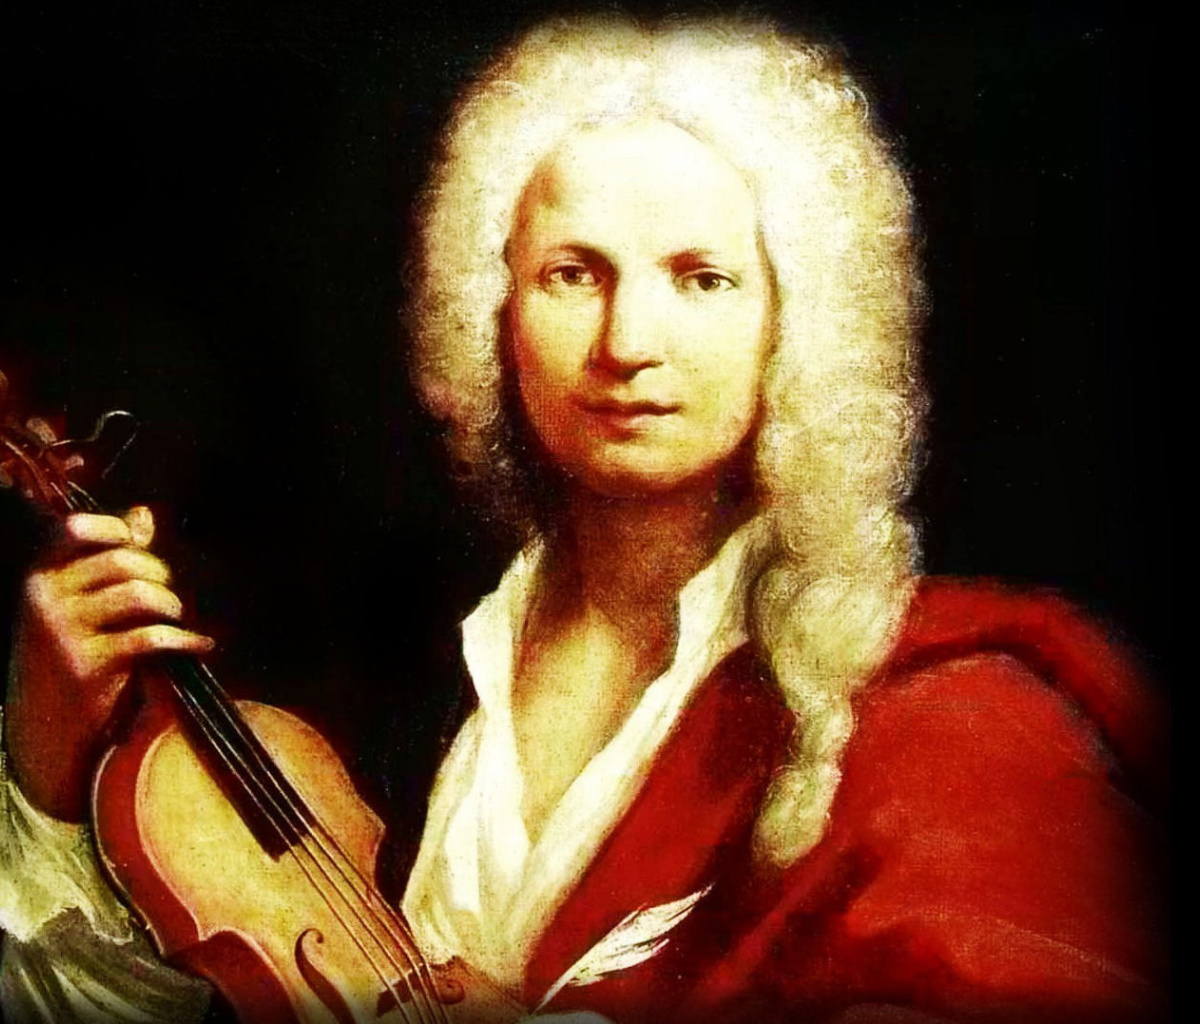 Das Antonio Vivaldi Wallpaper 1200x1024